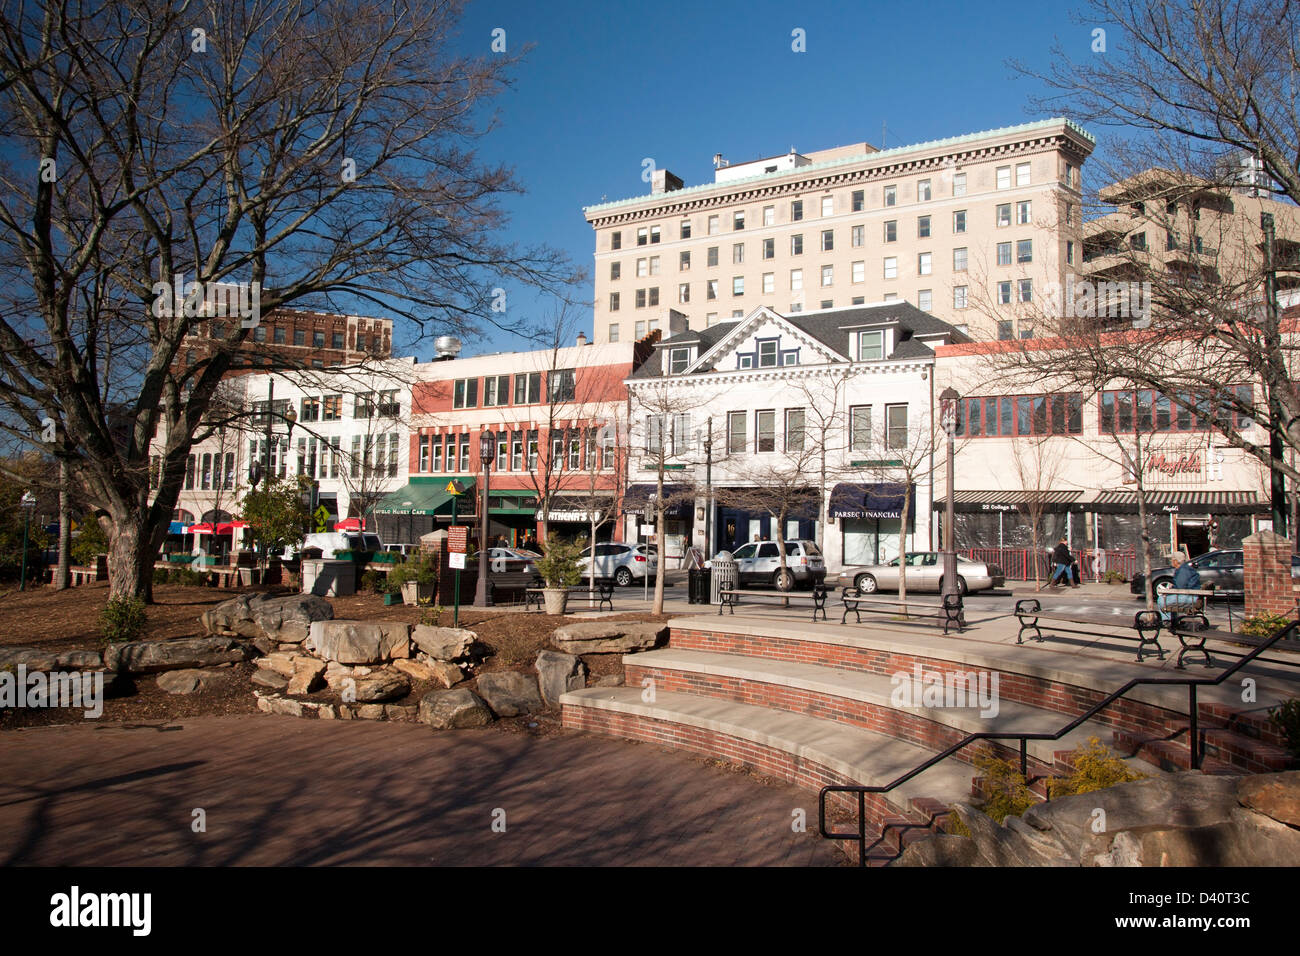 pritchard-park-downtown-asheville-north-